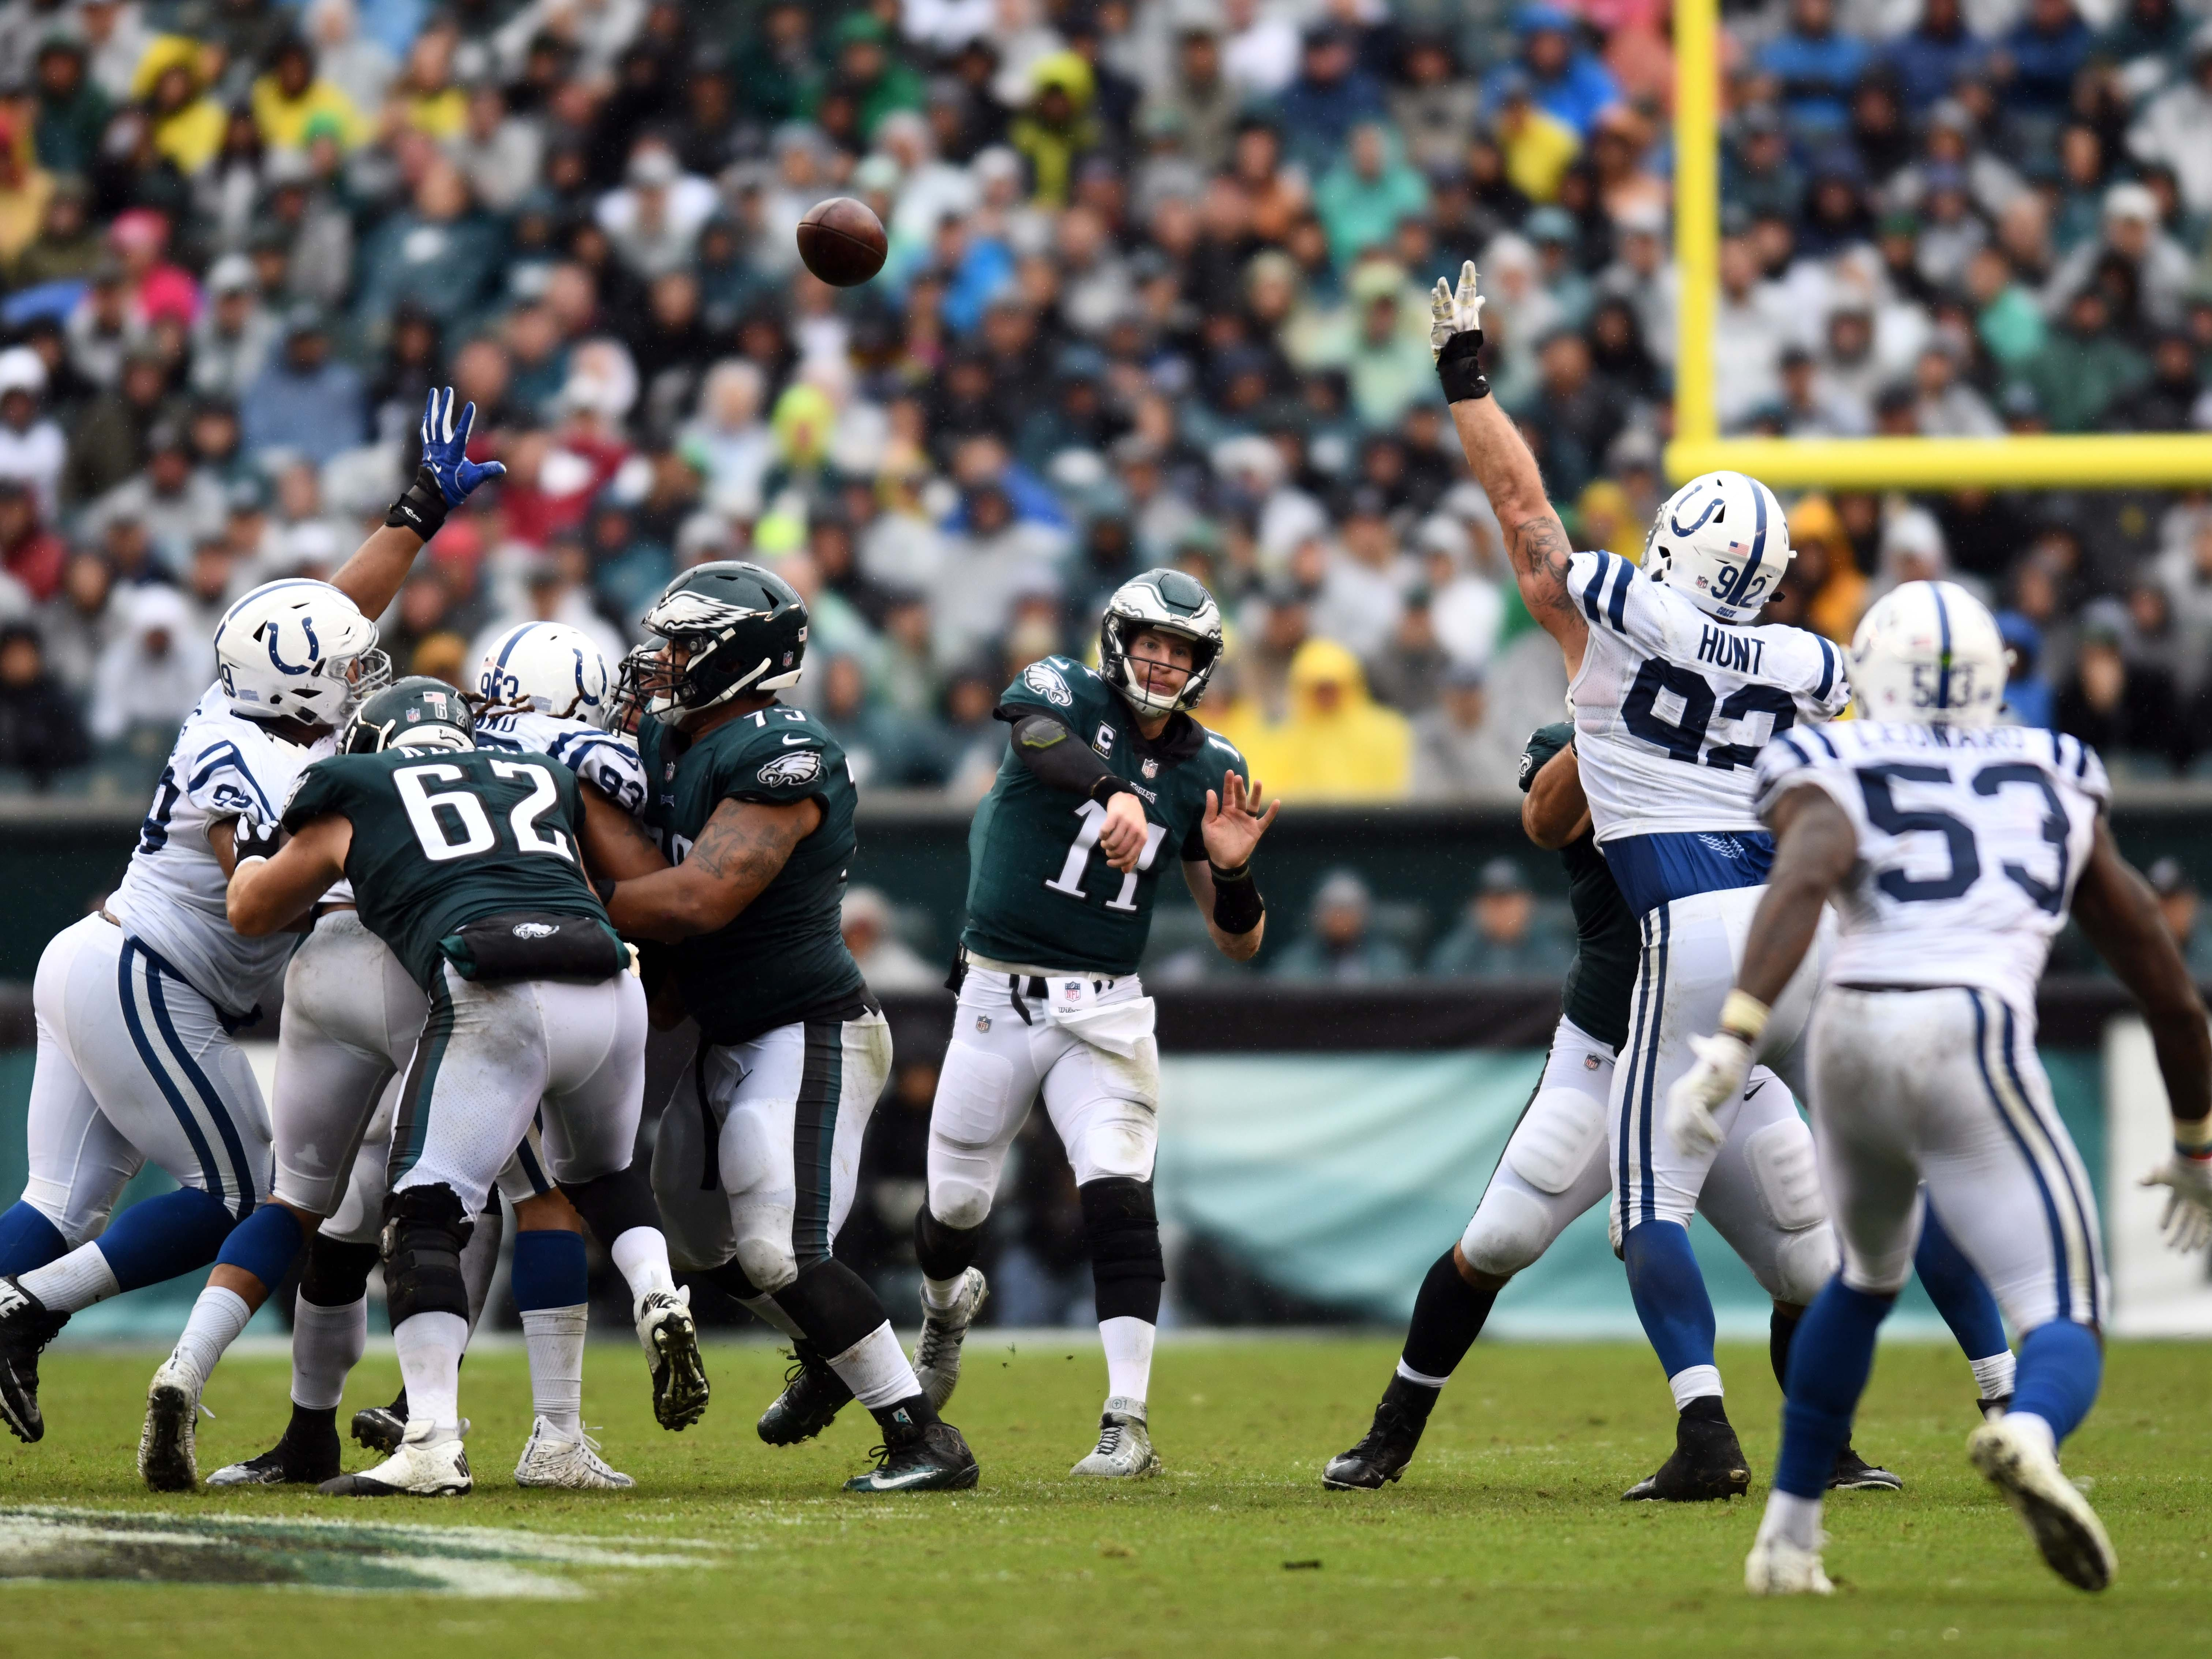 5. Eagles (7): Carson Wentz on pace to win every start of 2018, though it's unclear if that will extend to 2019 and a successful title defense.